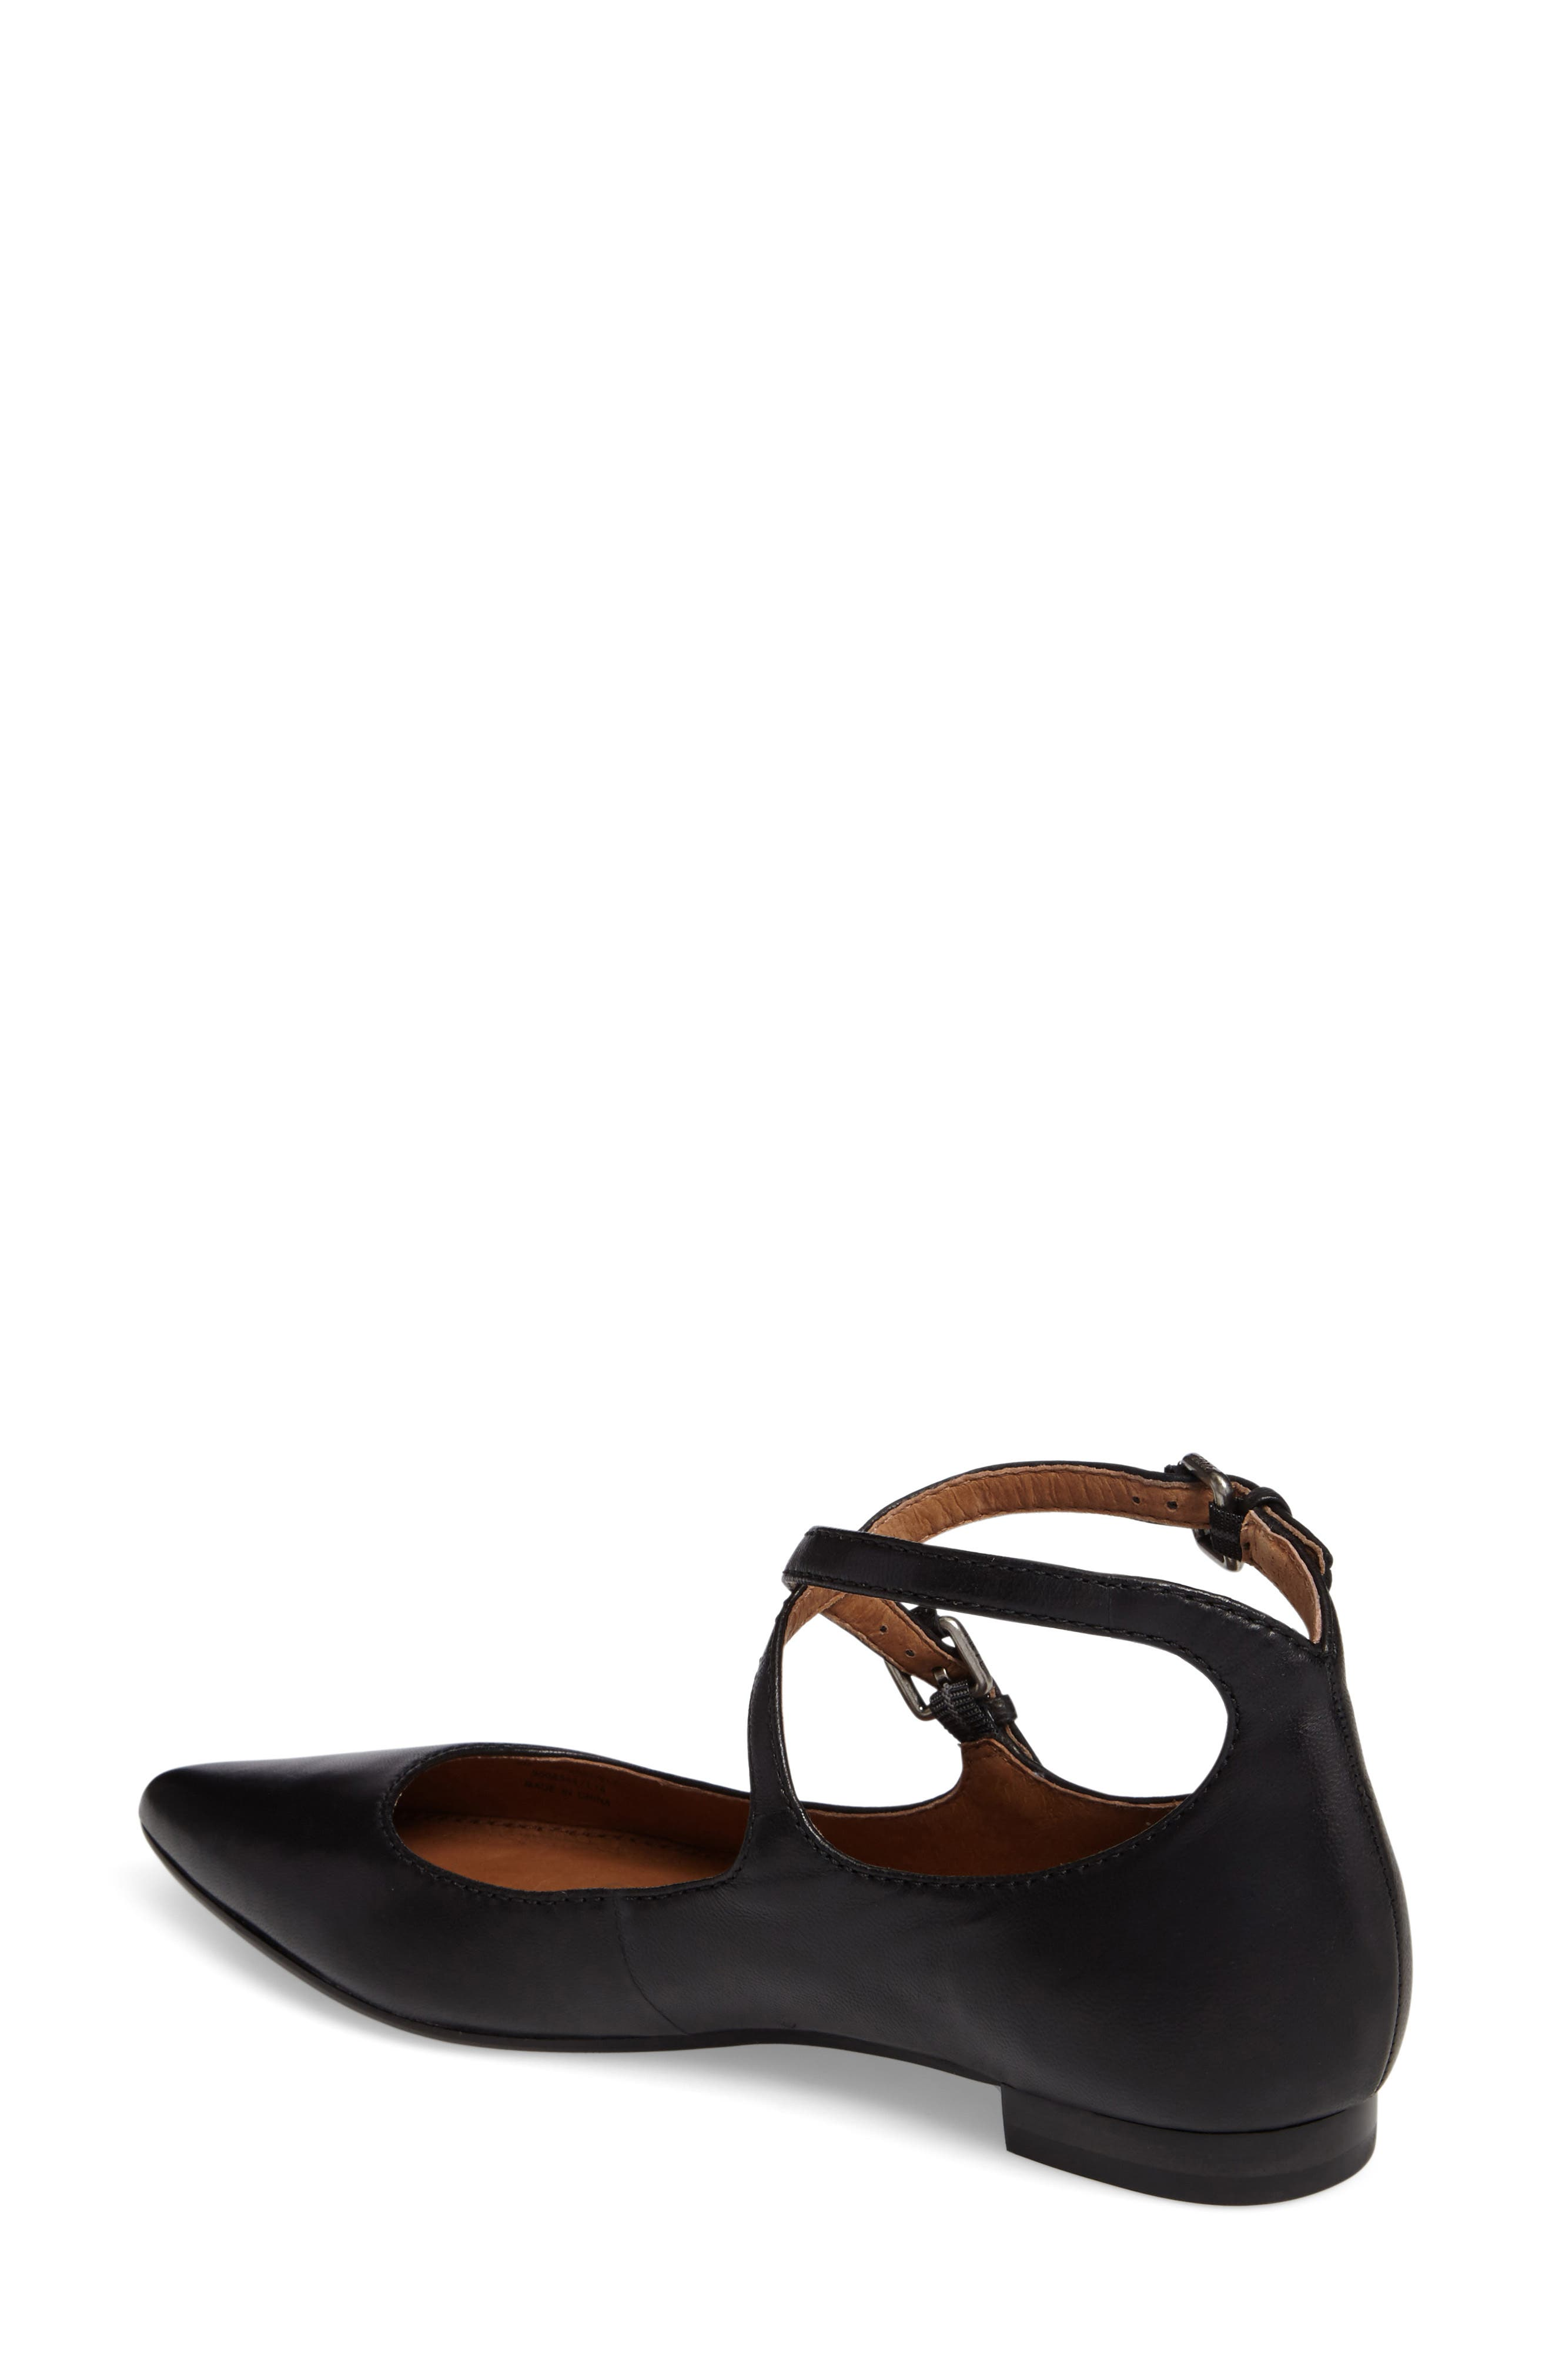 Sienna Cross Ballet Flat,                             Alternate thumbnail 4, color,